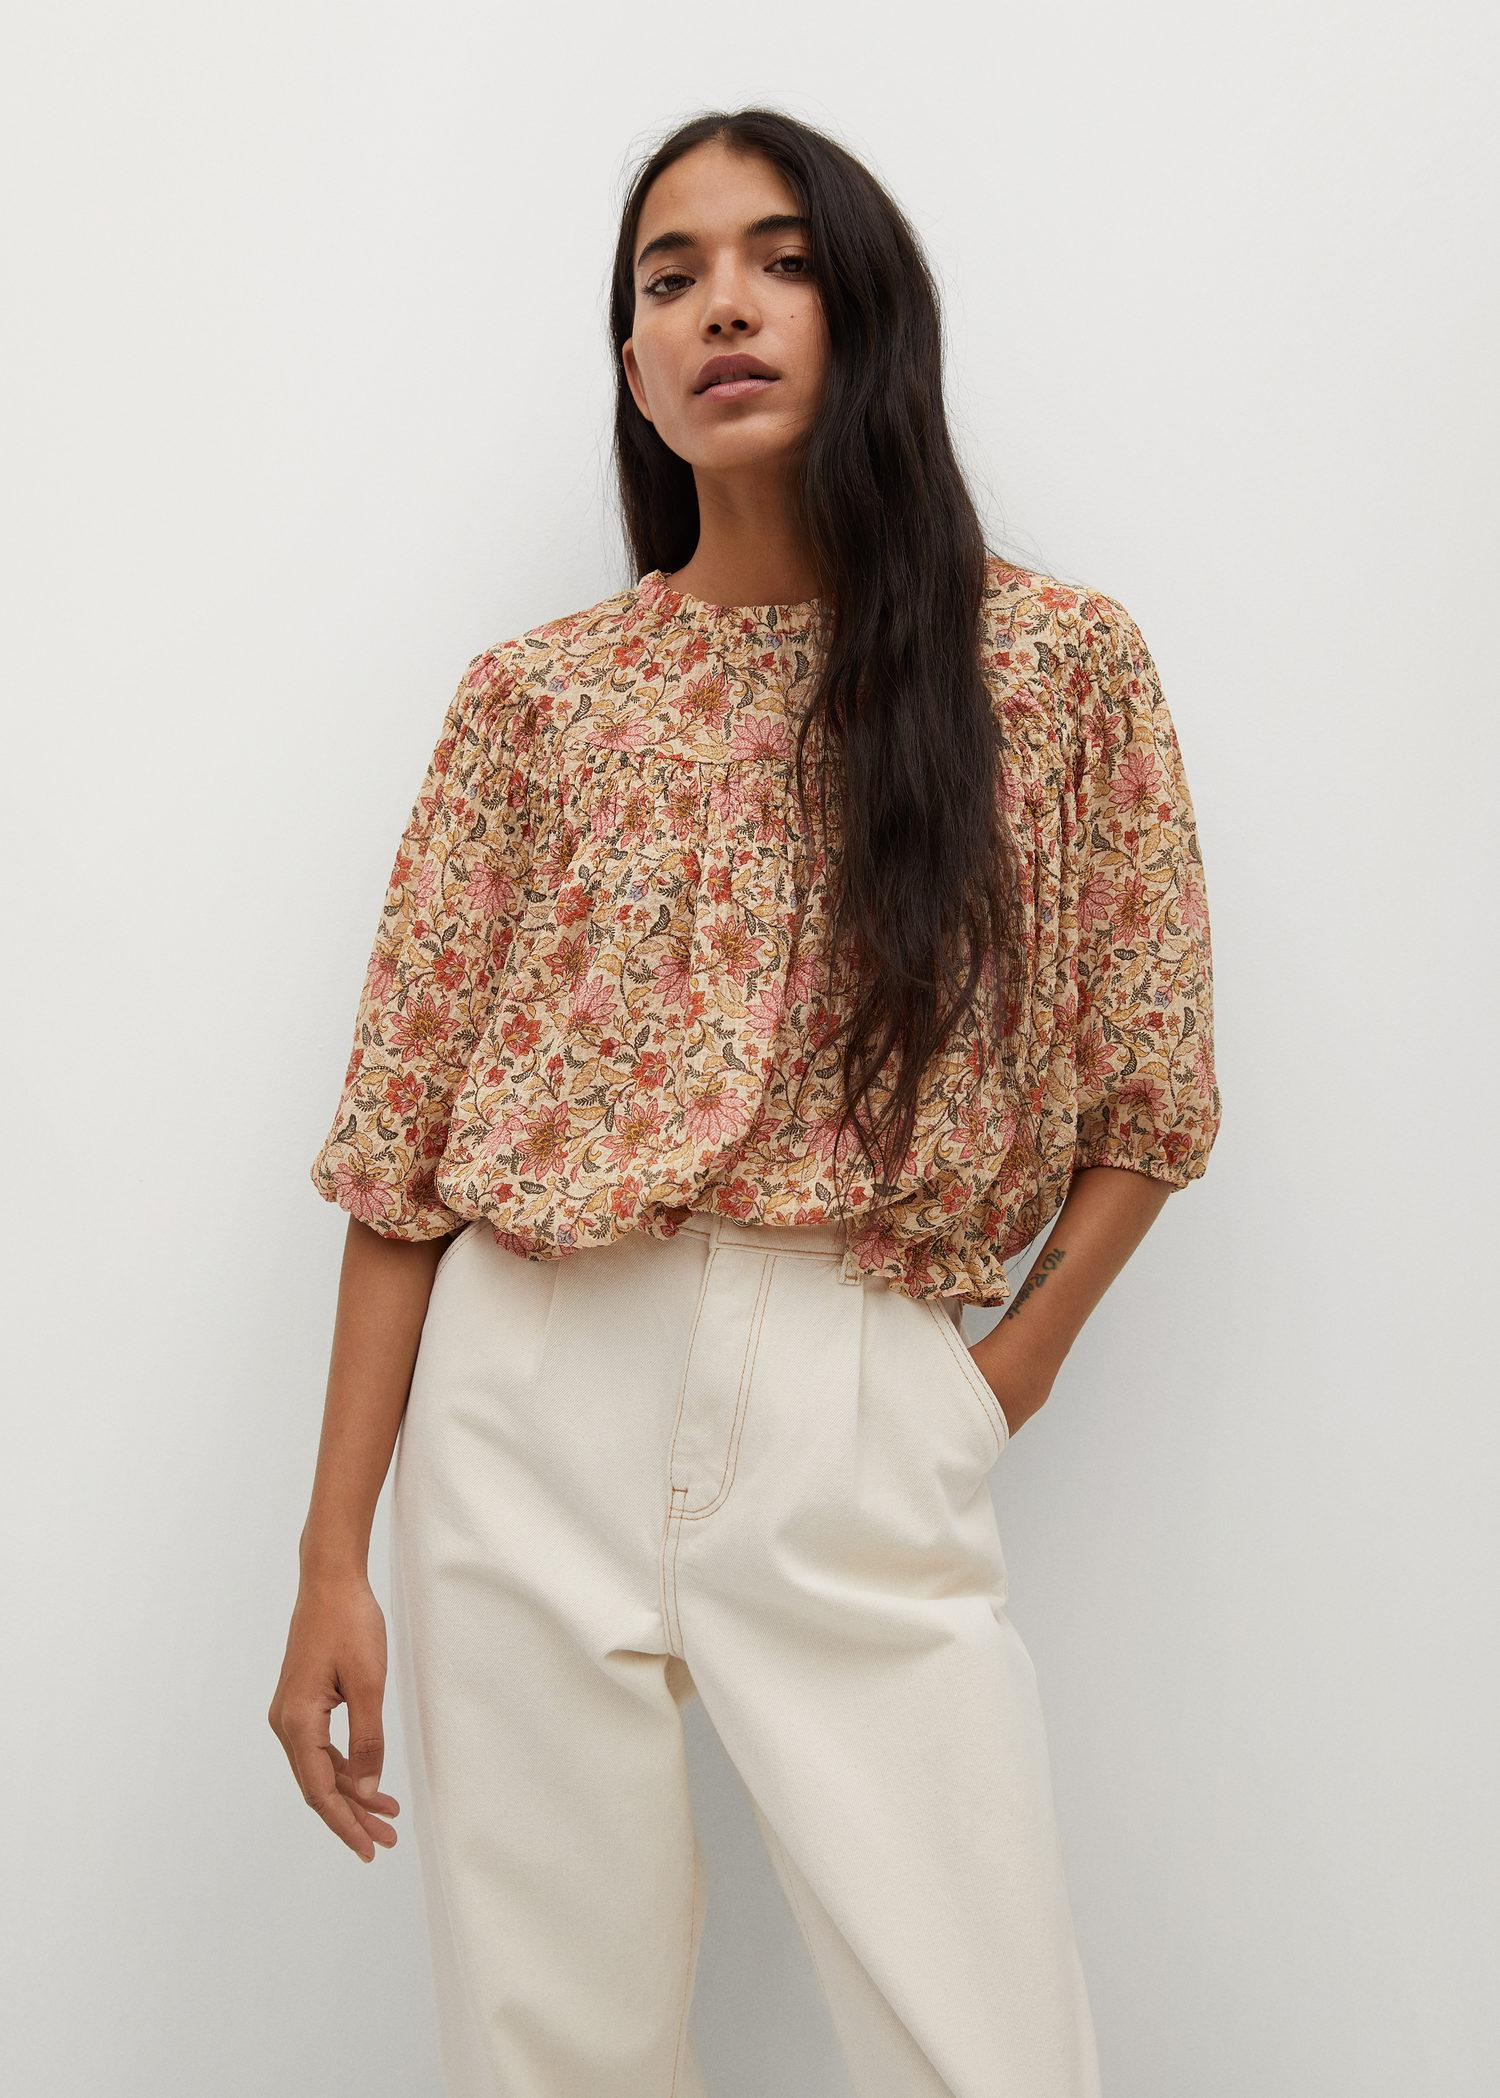 Textured printed blouse